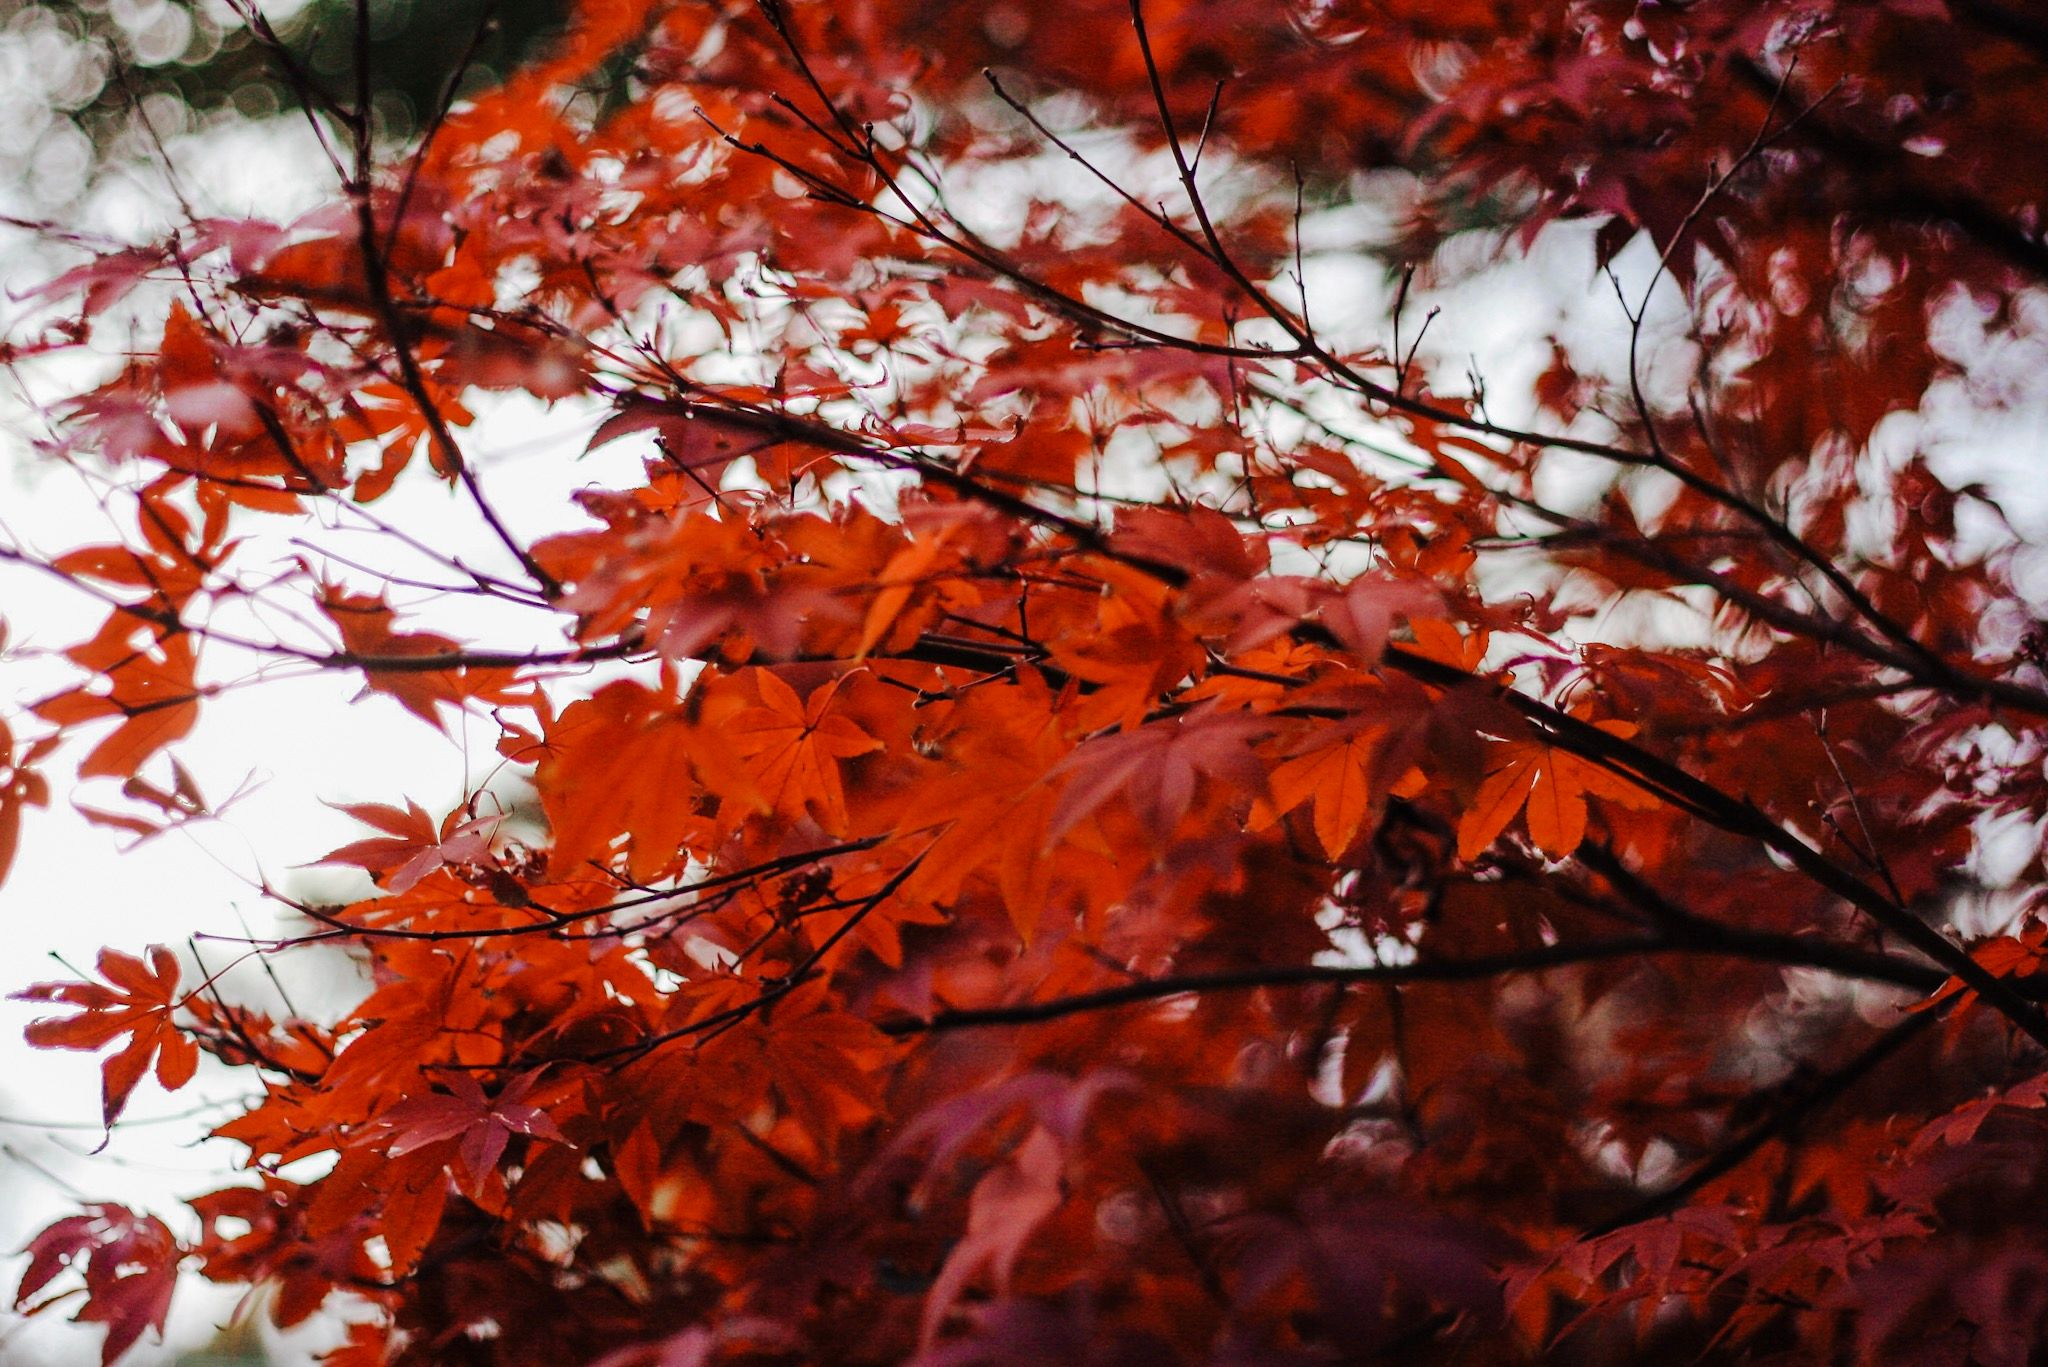 red falls leaves still on the tree during autumn at lake lynn